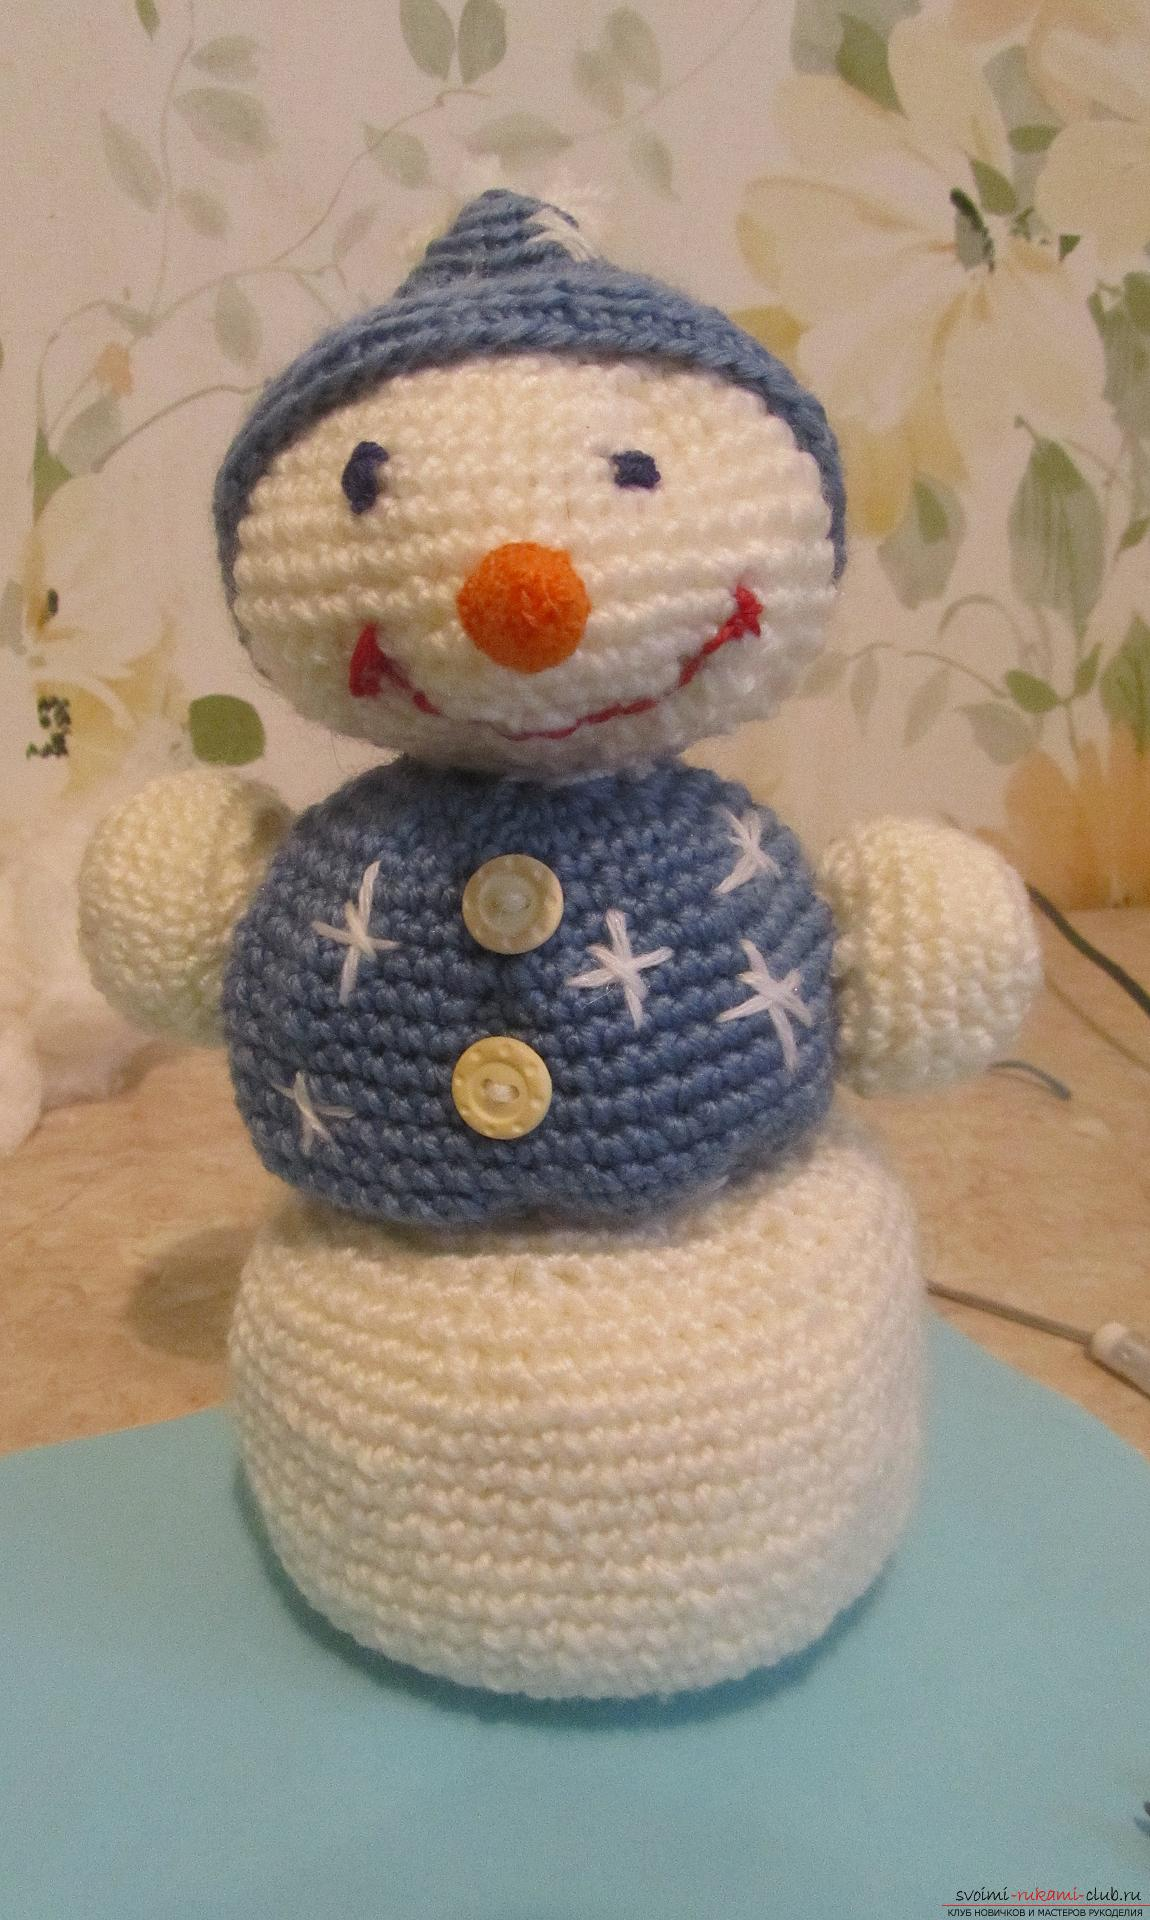 The master class will tell you how to create a New Year's craft - a crocheted snowman Stepu. Photo №61